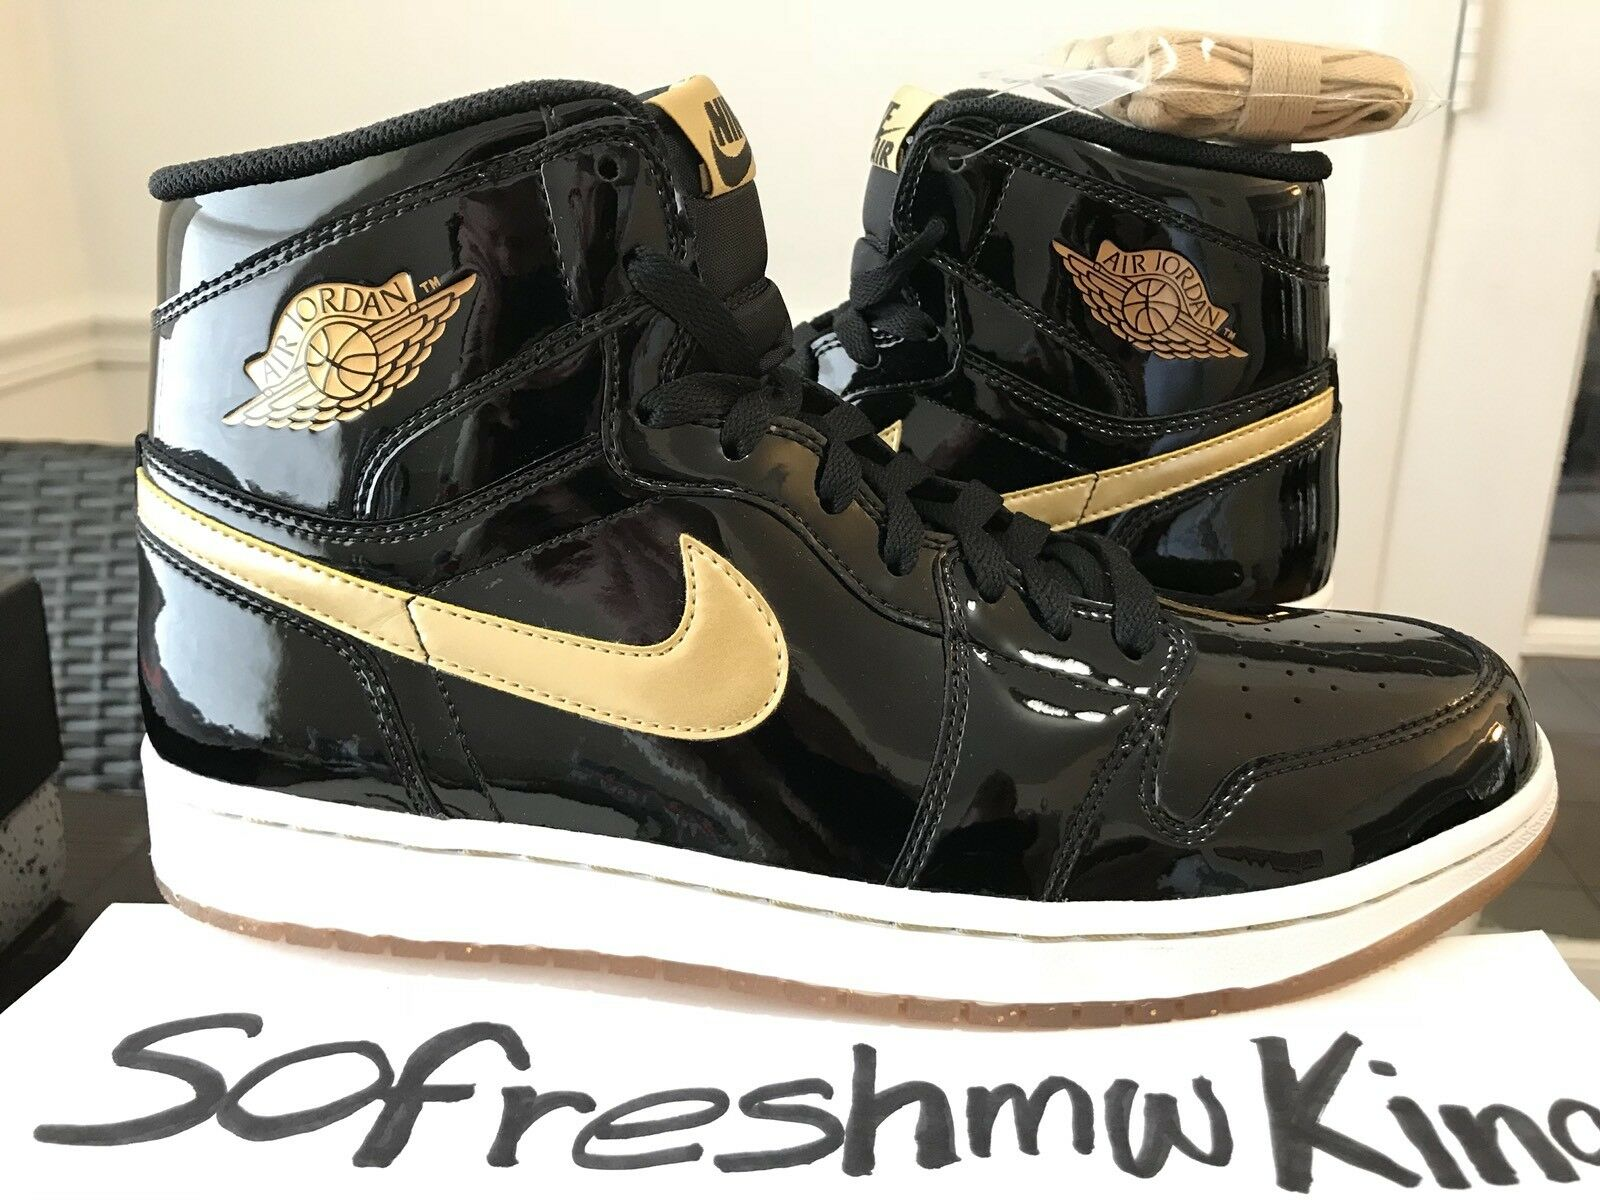 2013 Nike Air Jordan 1 BLACK gold Promo Sample  sz 9.5 DS  PE OREGON LOS